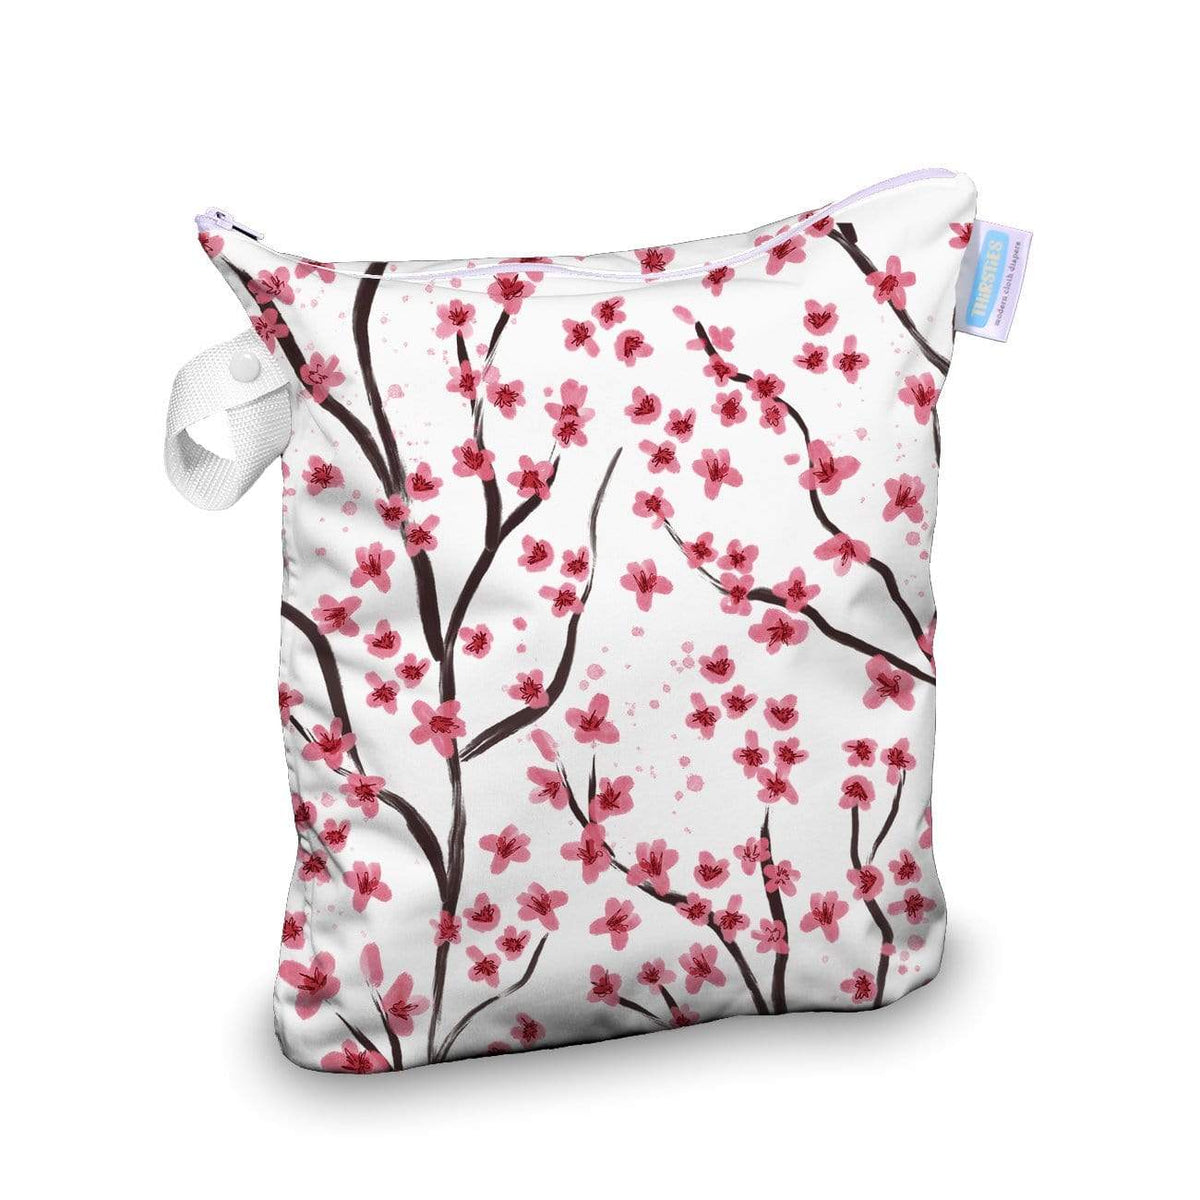 Thirsties Wet Bag - Sakura